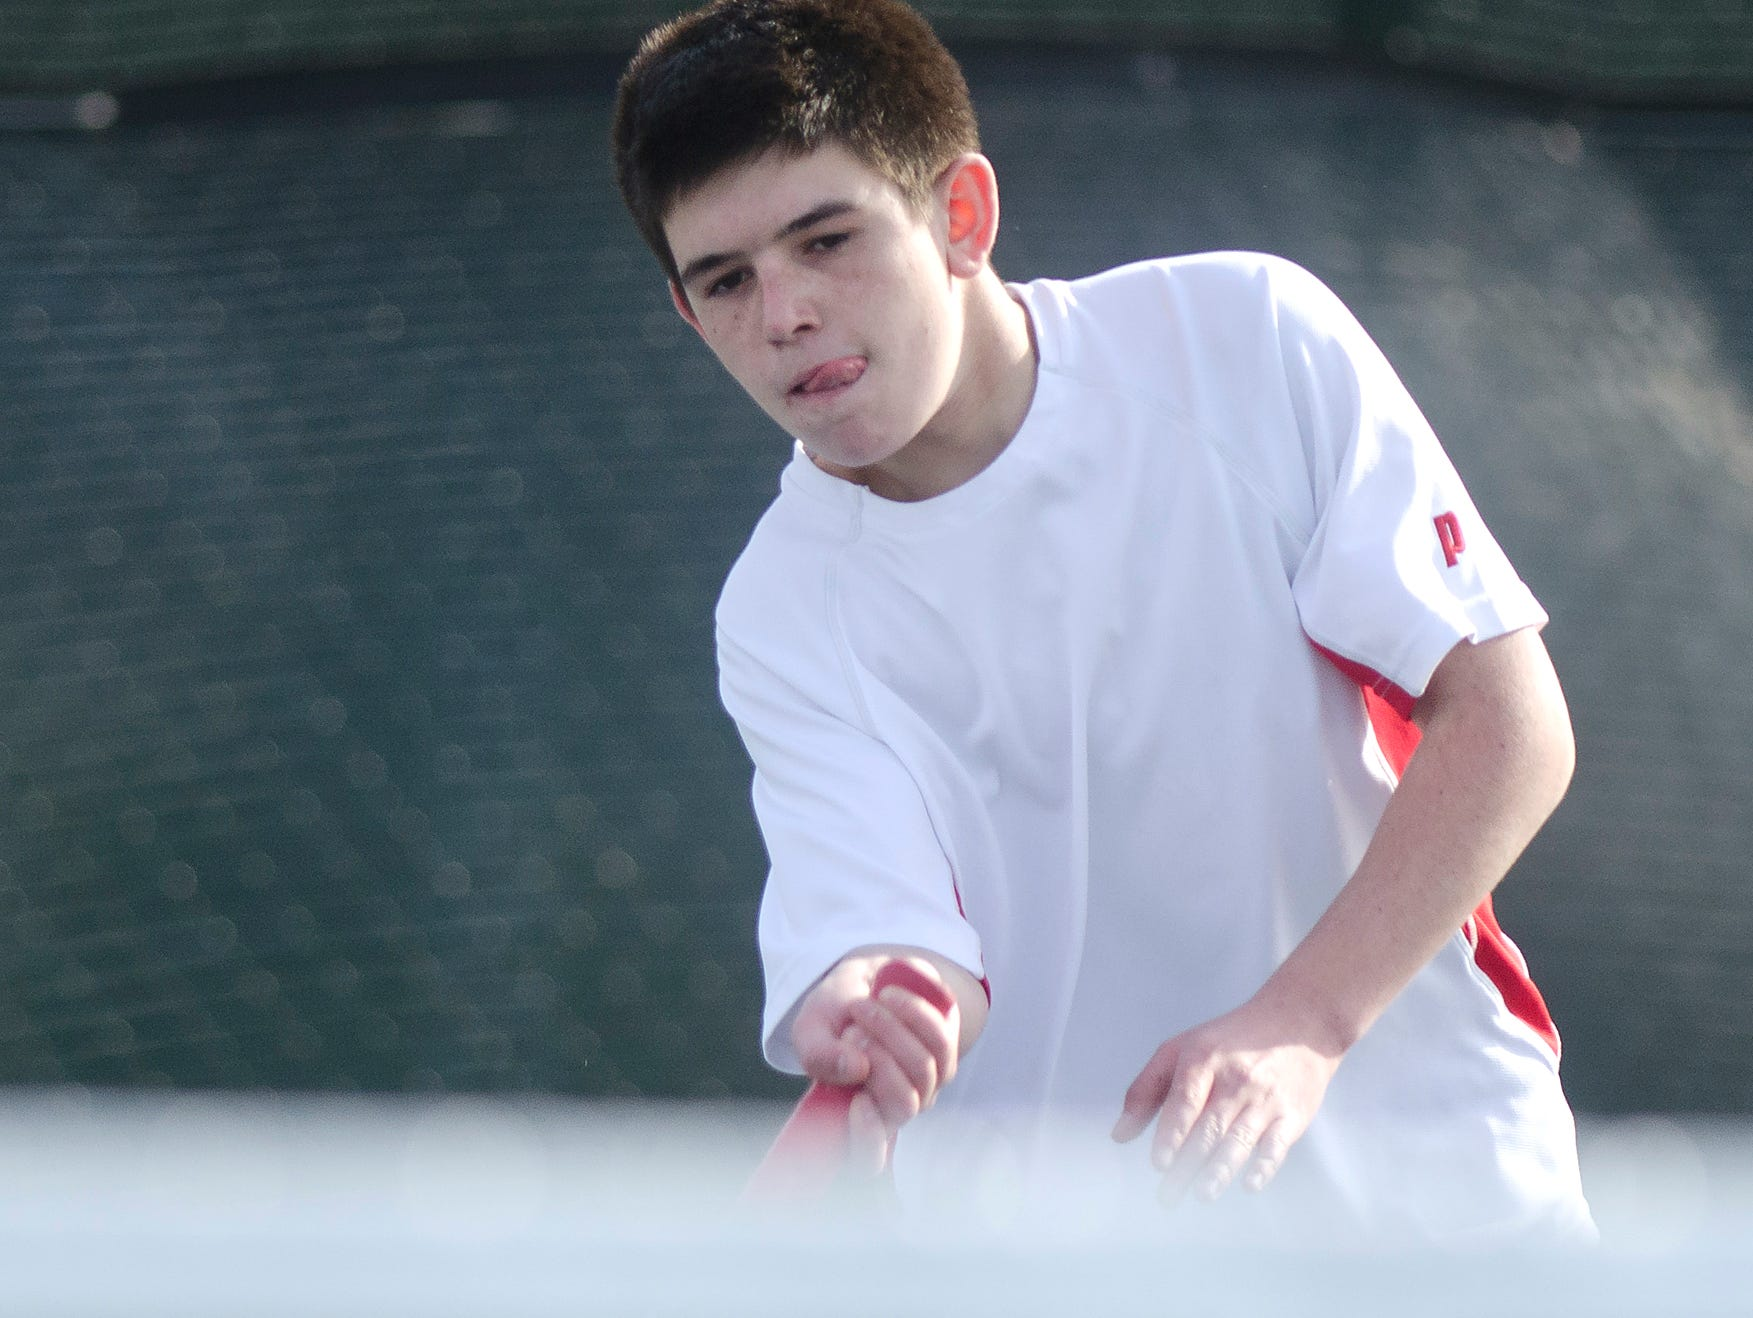 Champlain Valley doubles player David Huber returns a shot during a match last season.